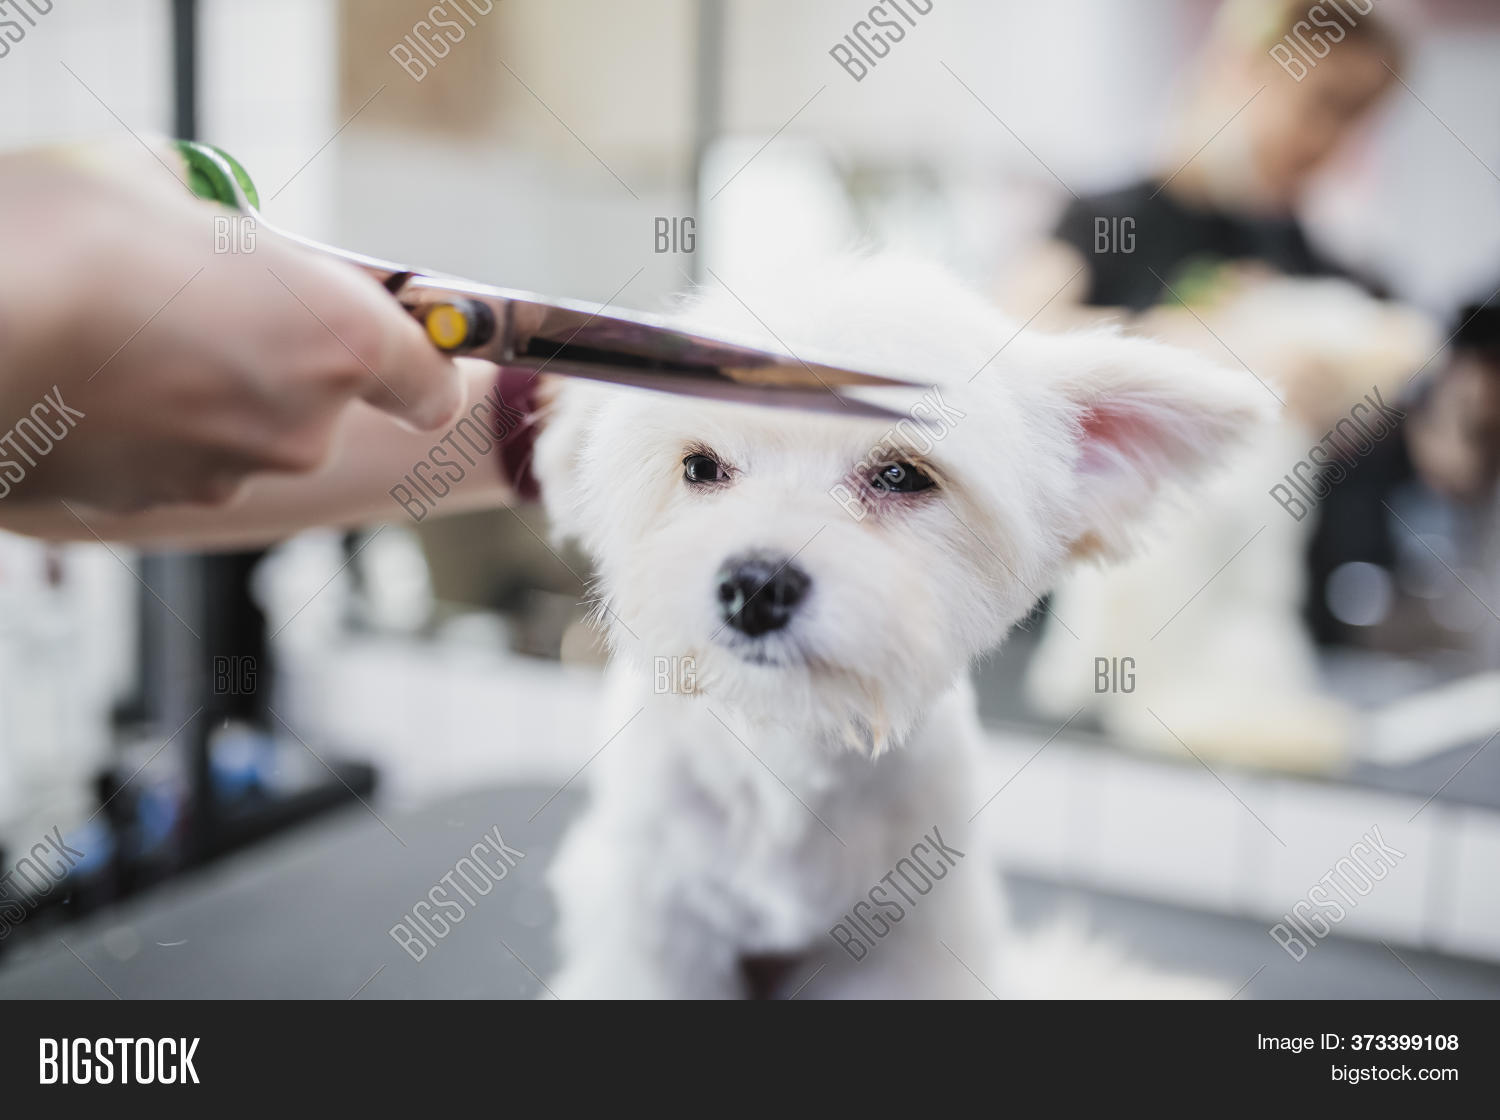 Maltese Dog Grooming Image Photo Free Trial Bigstock